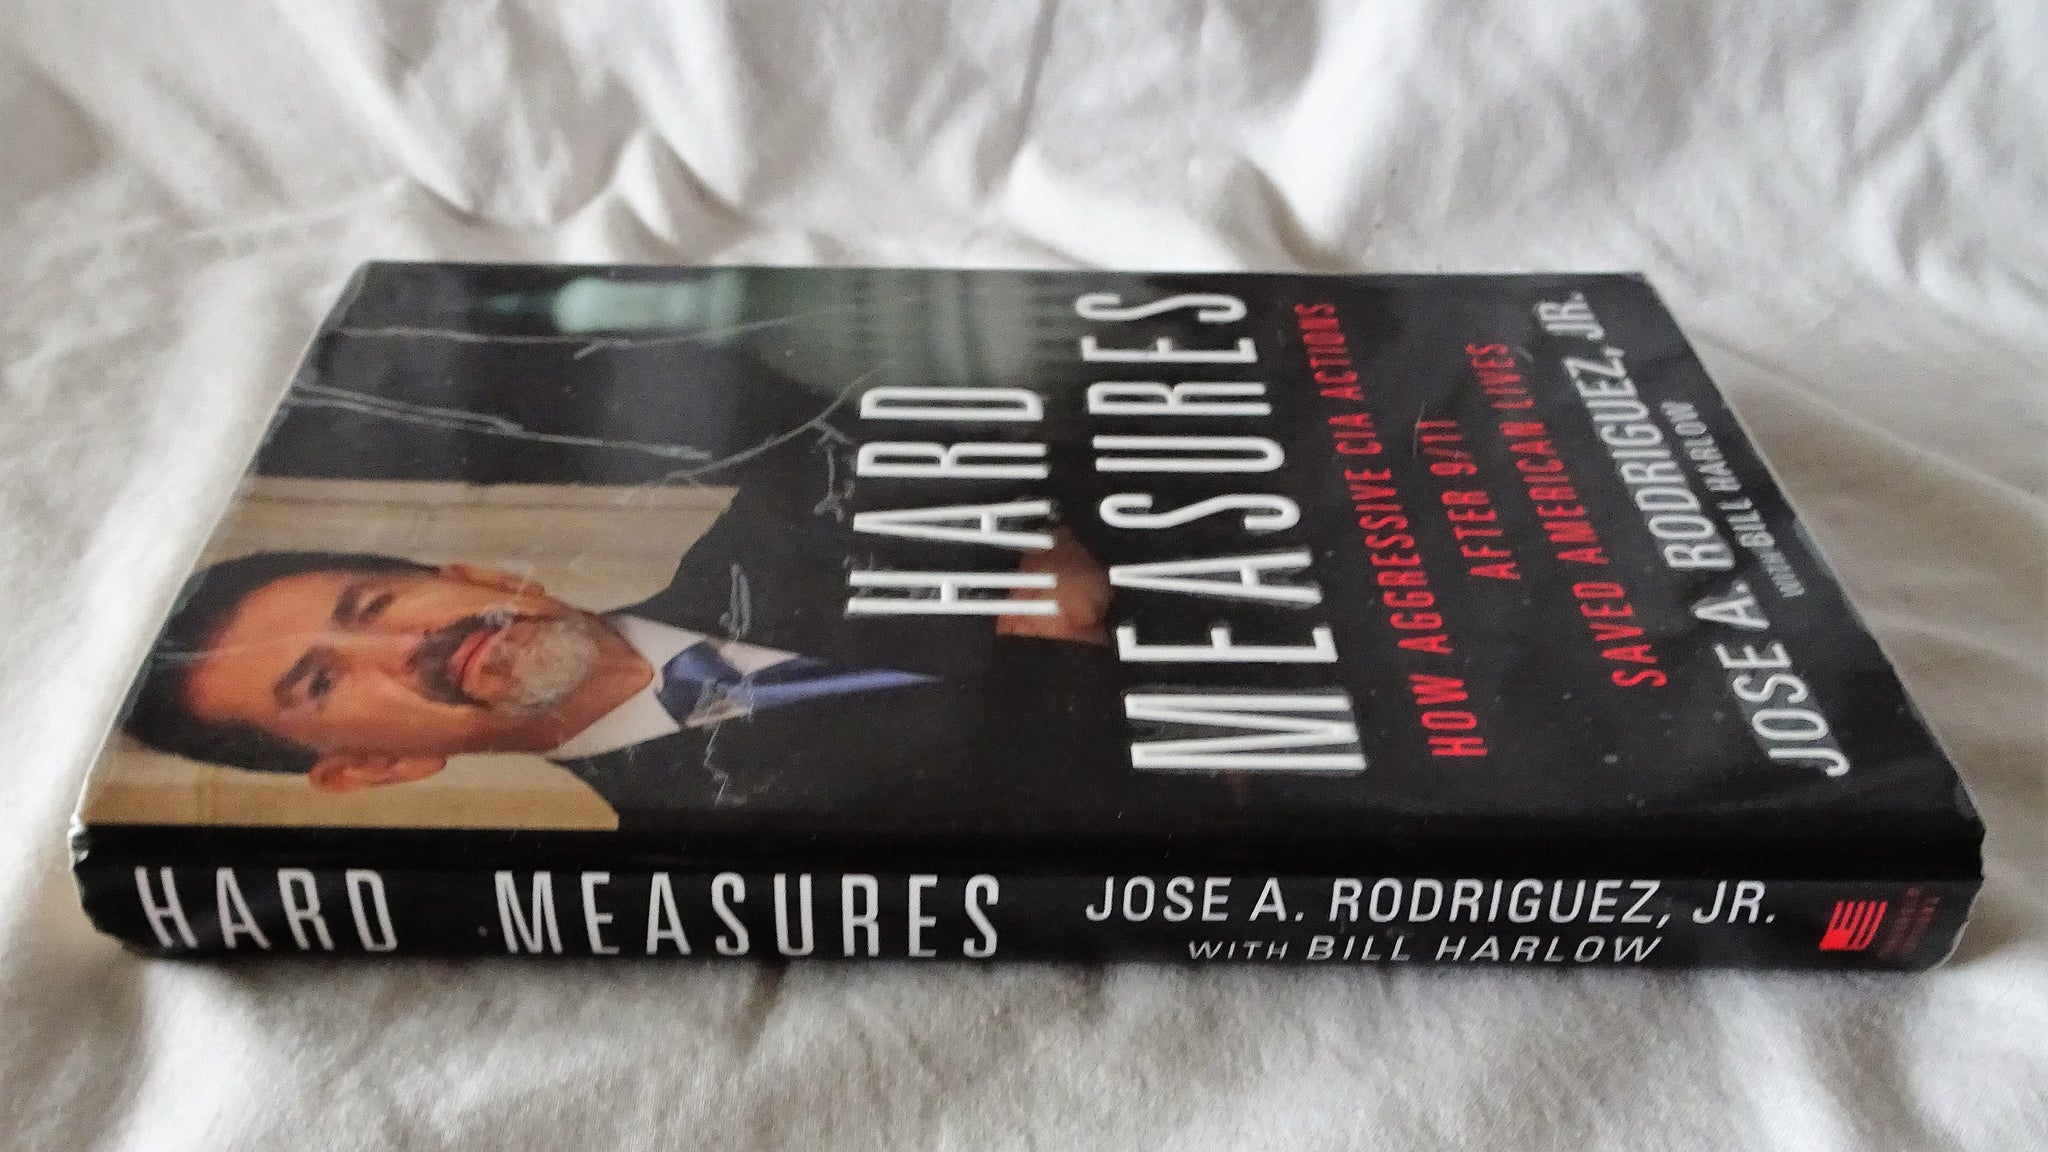 hard measures harlow bill rodriguez jose a